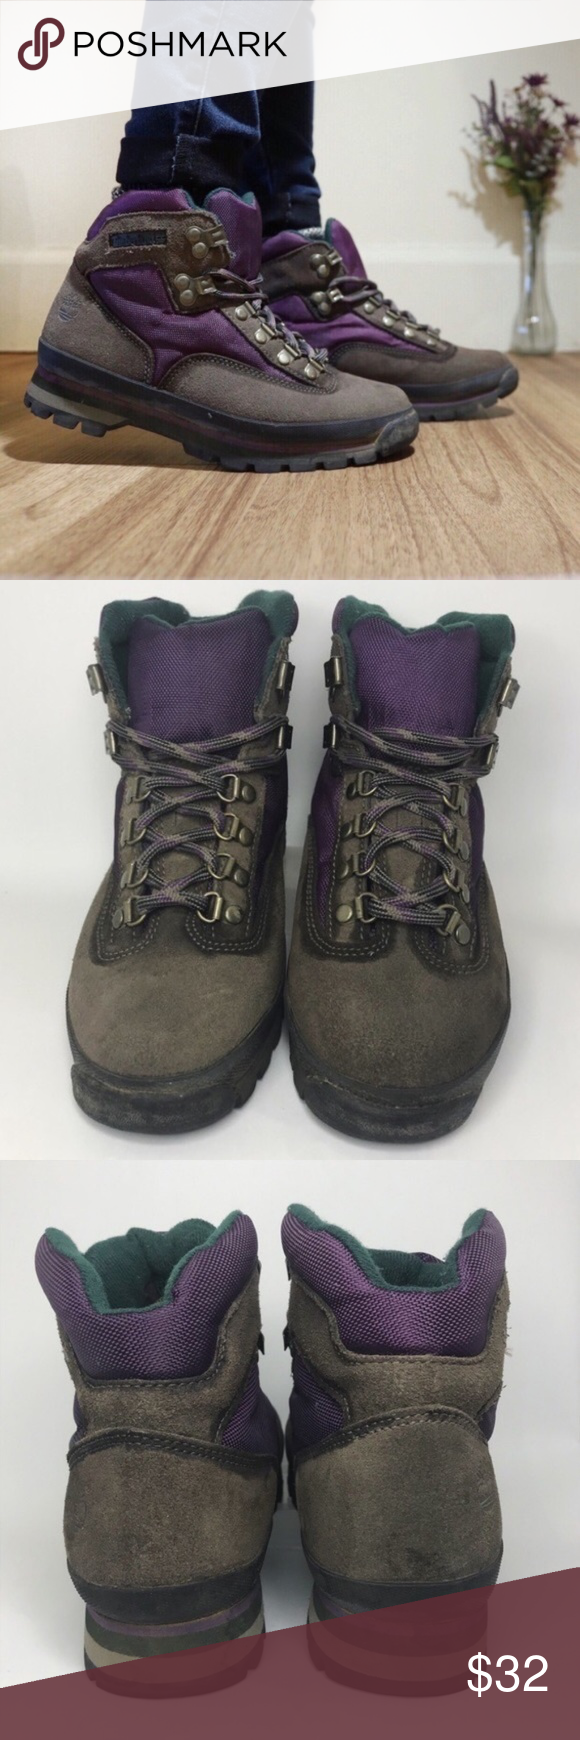 90s Timberland Euro Hiker Boots ✧ Unique 90s Timberland